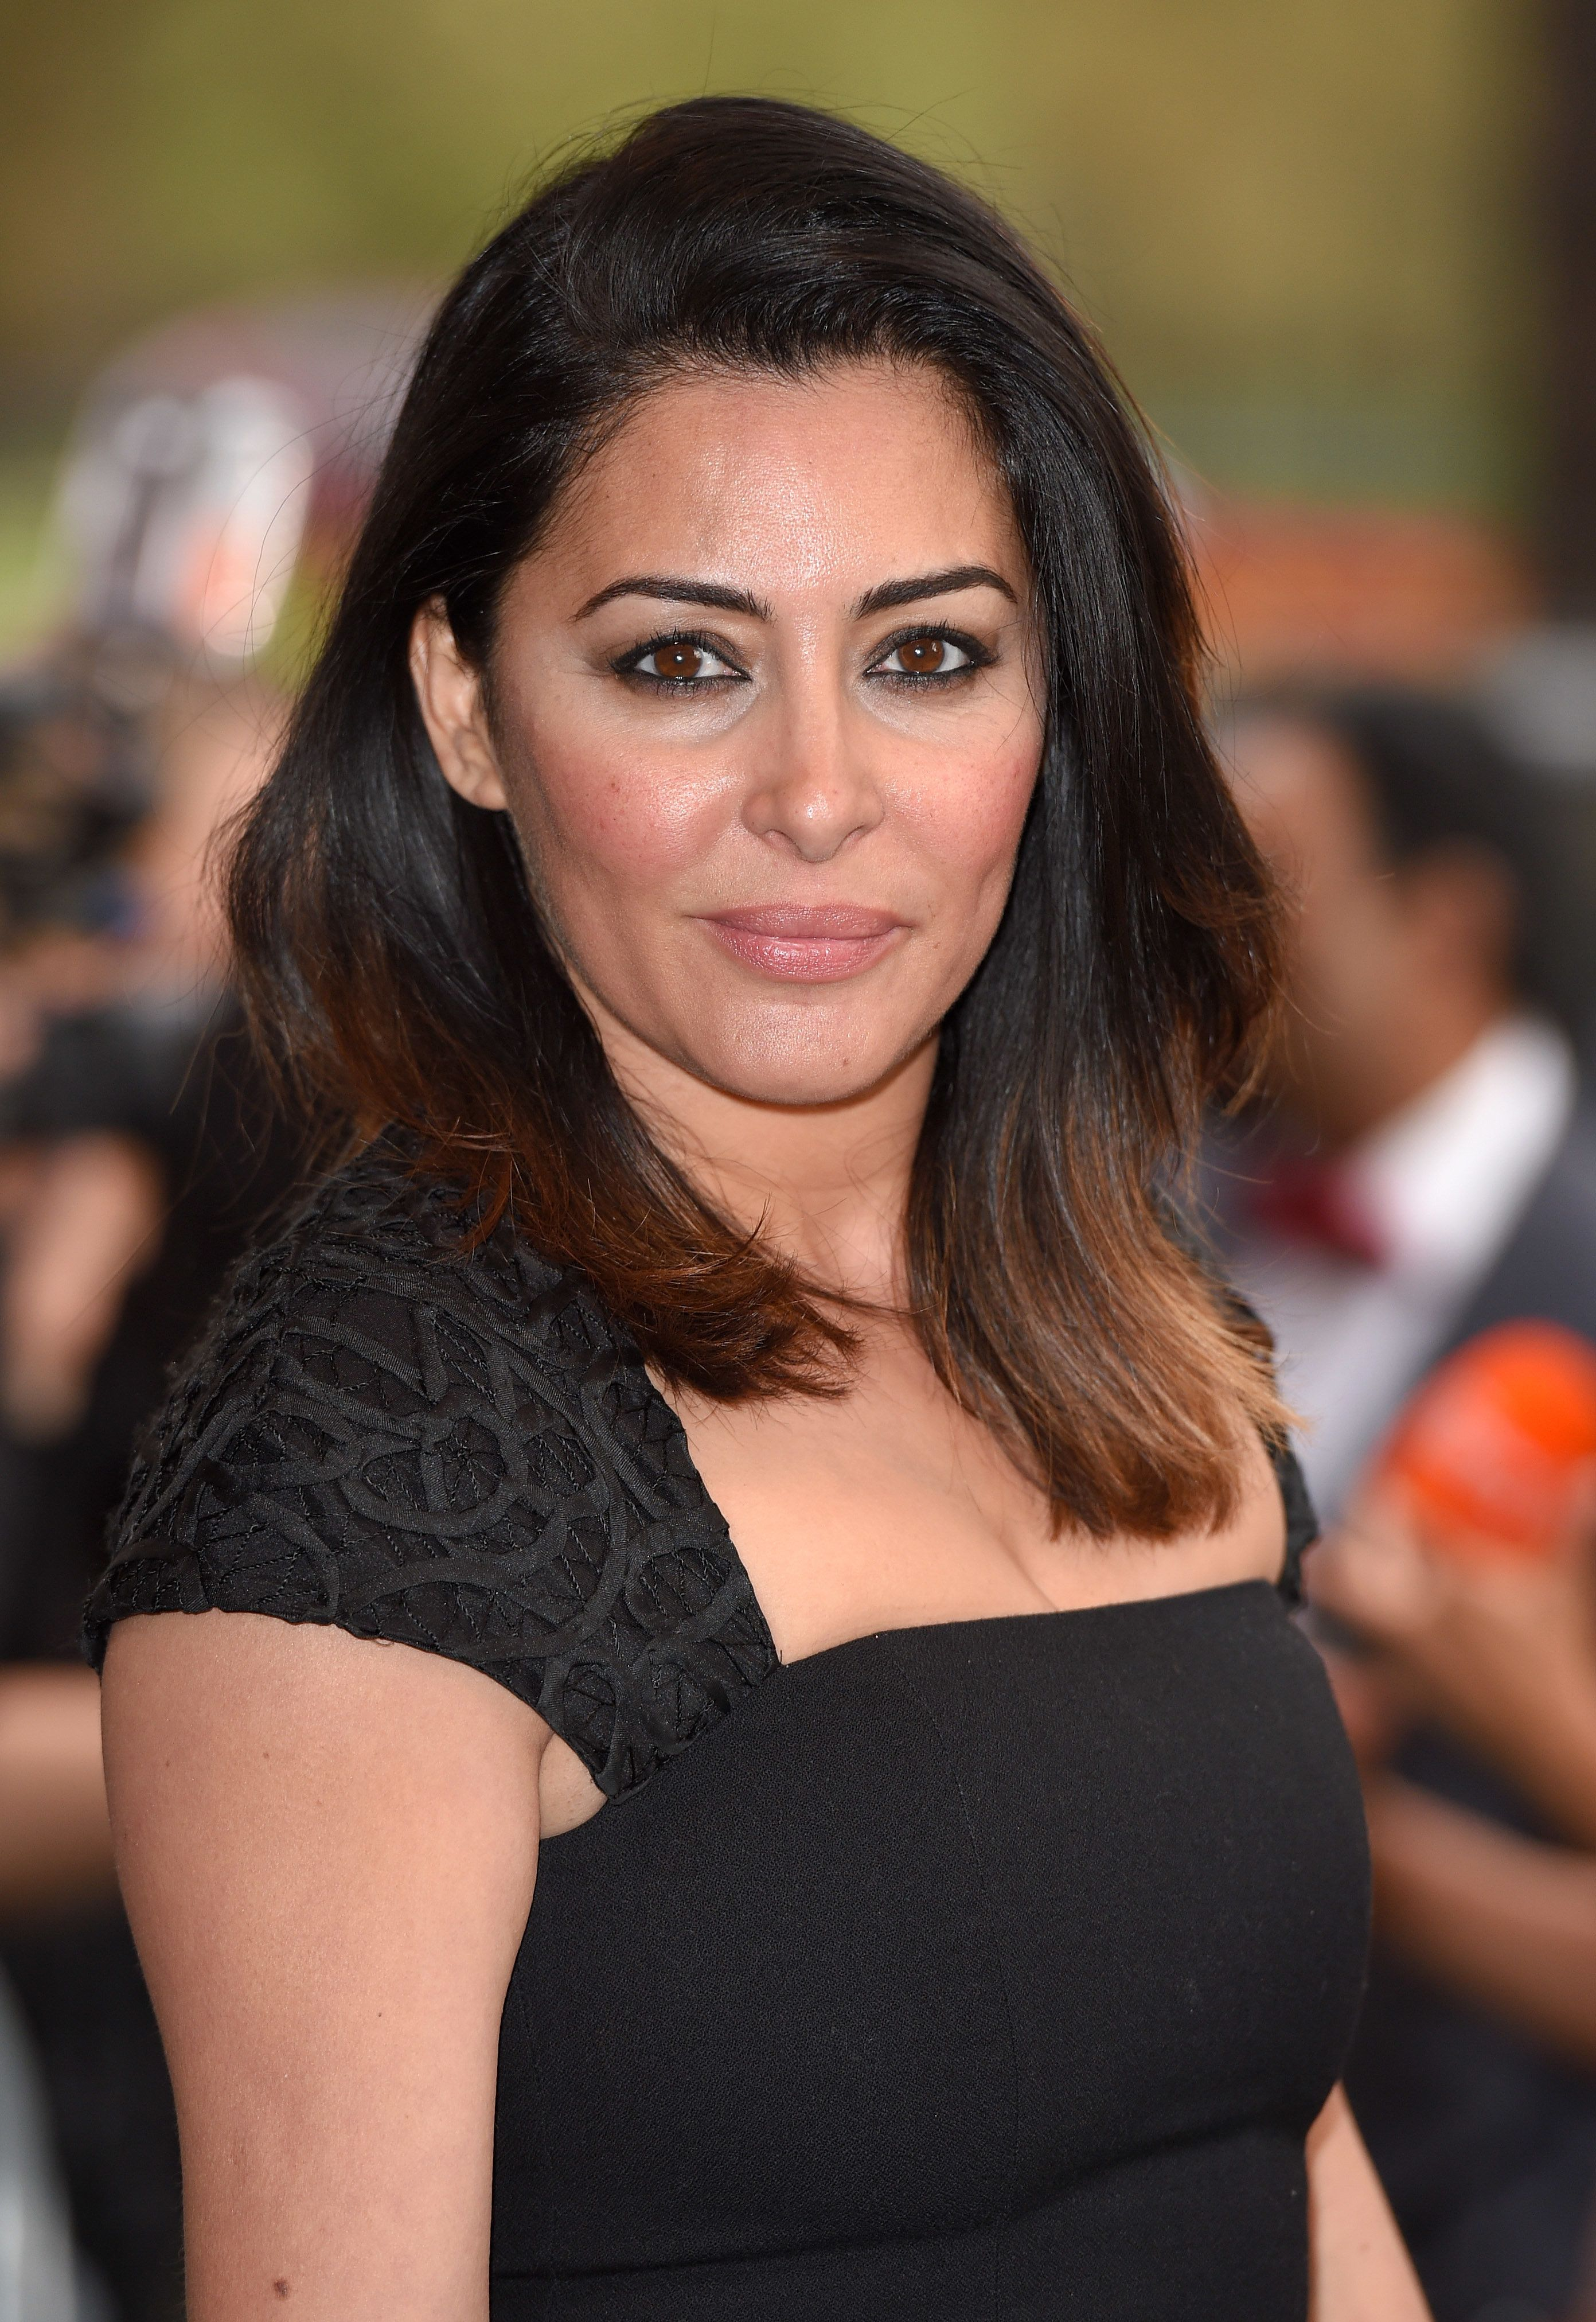 'Holby City' And Former 'Strictly' Star Laila Rouass 'Caught Up' In Barcelona